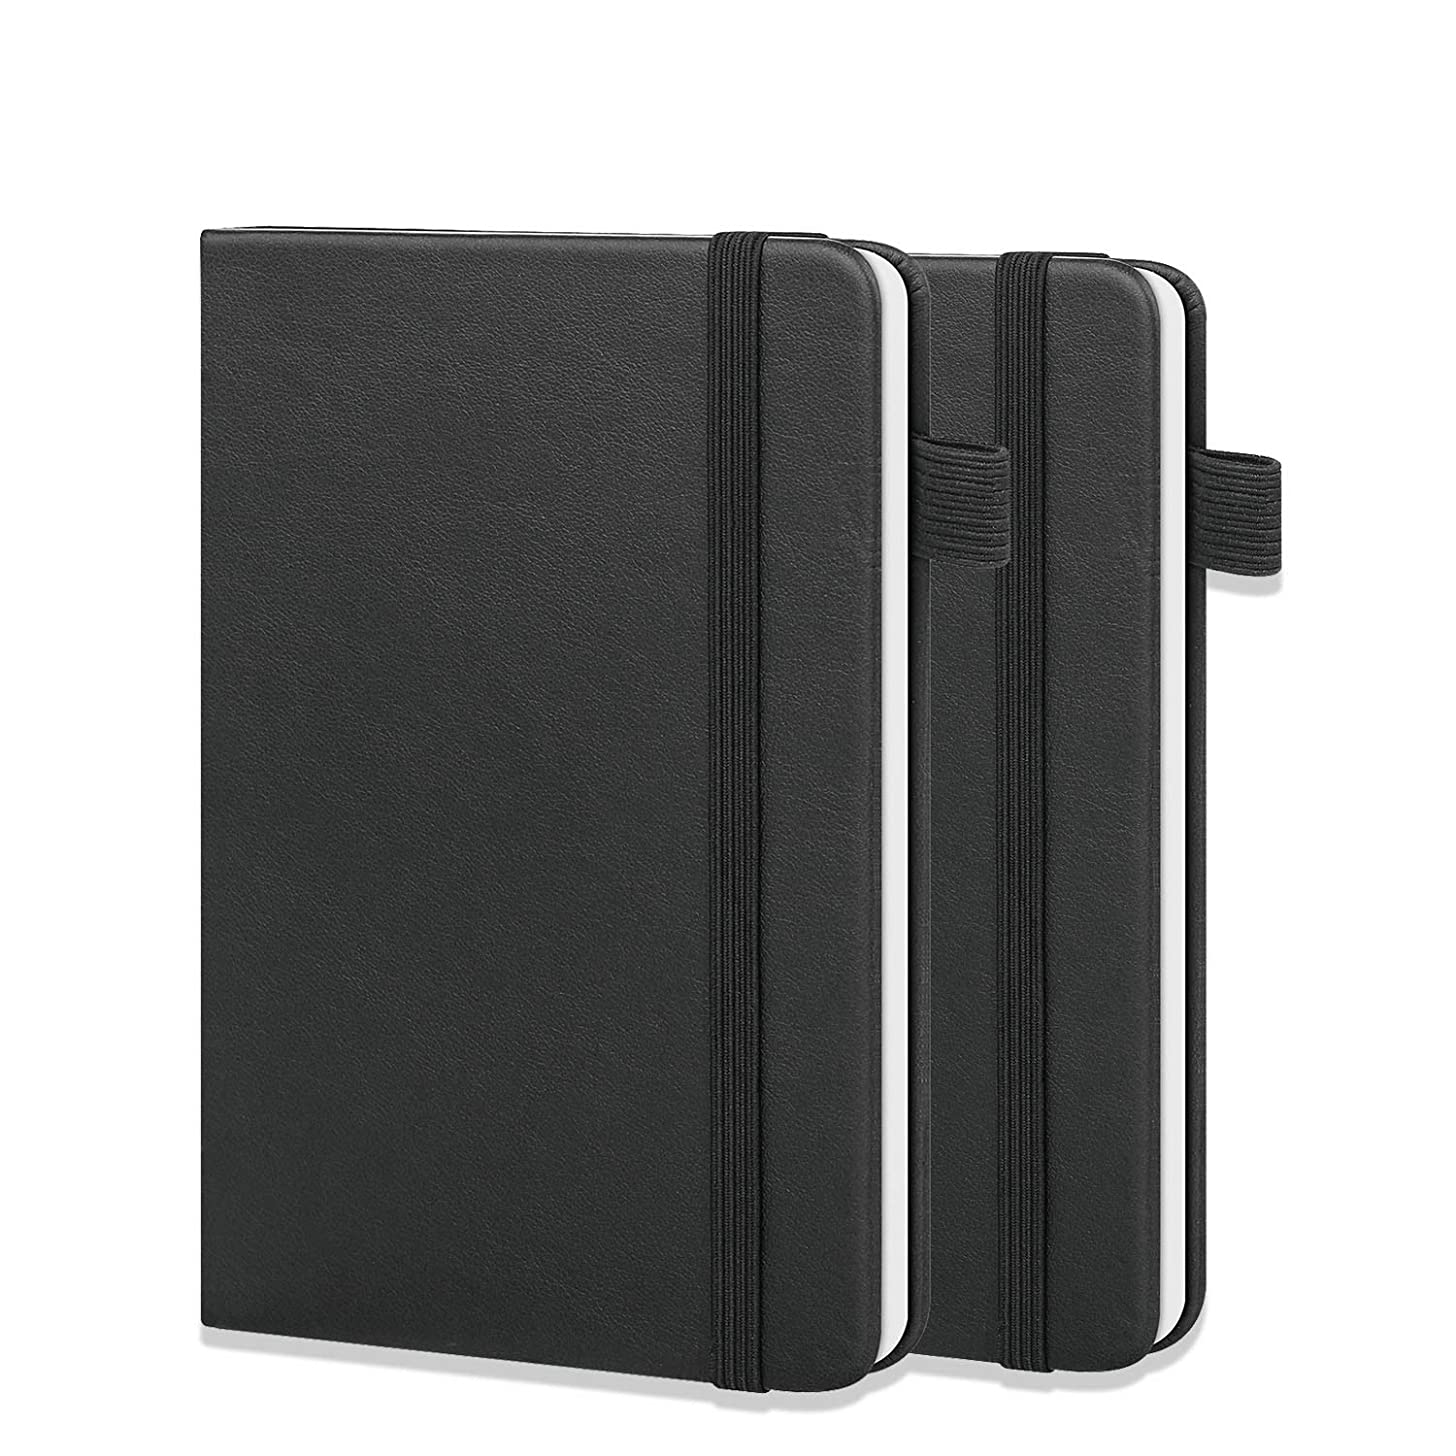 2-Pack Pocket Notebook Journal Notepad 3.5